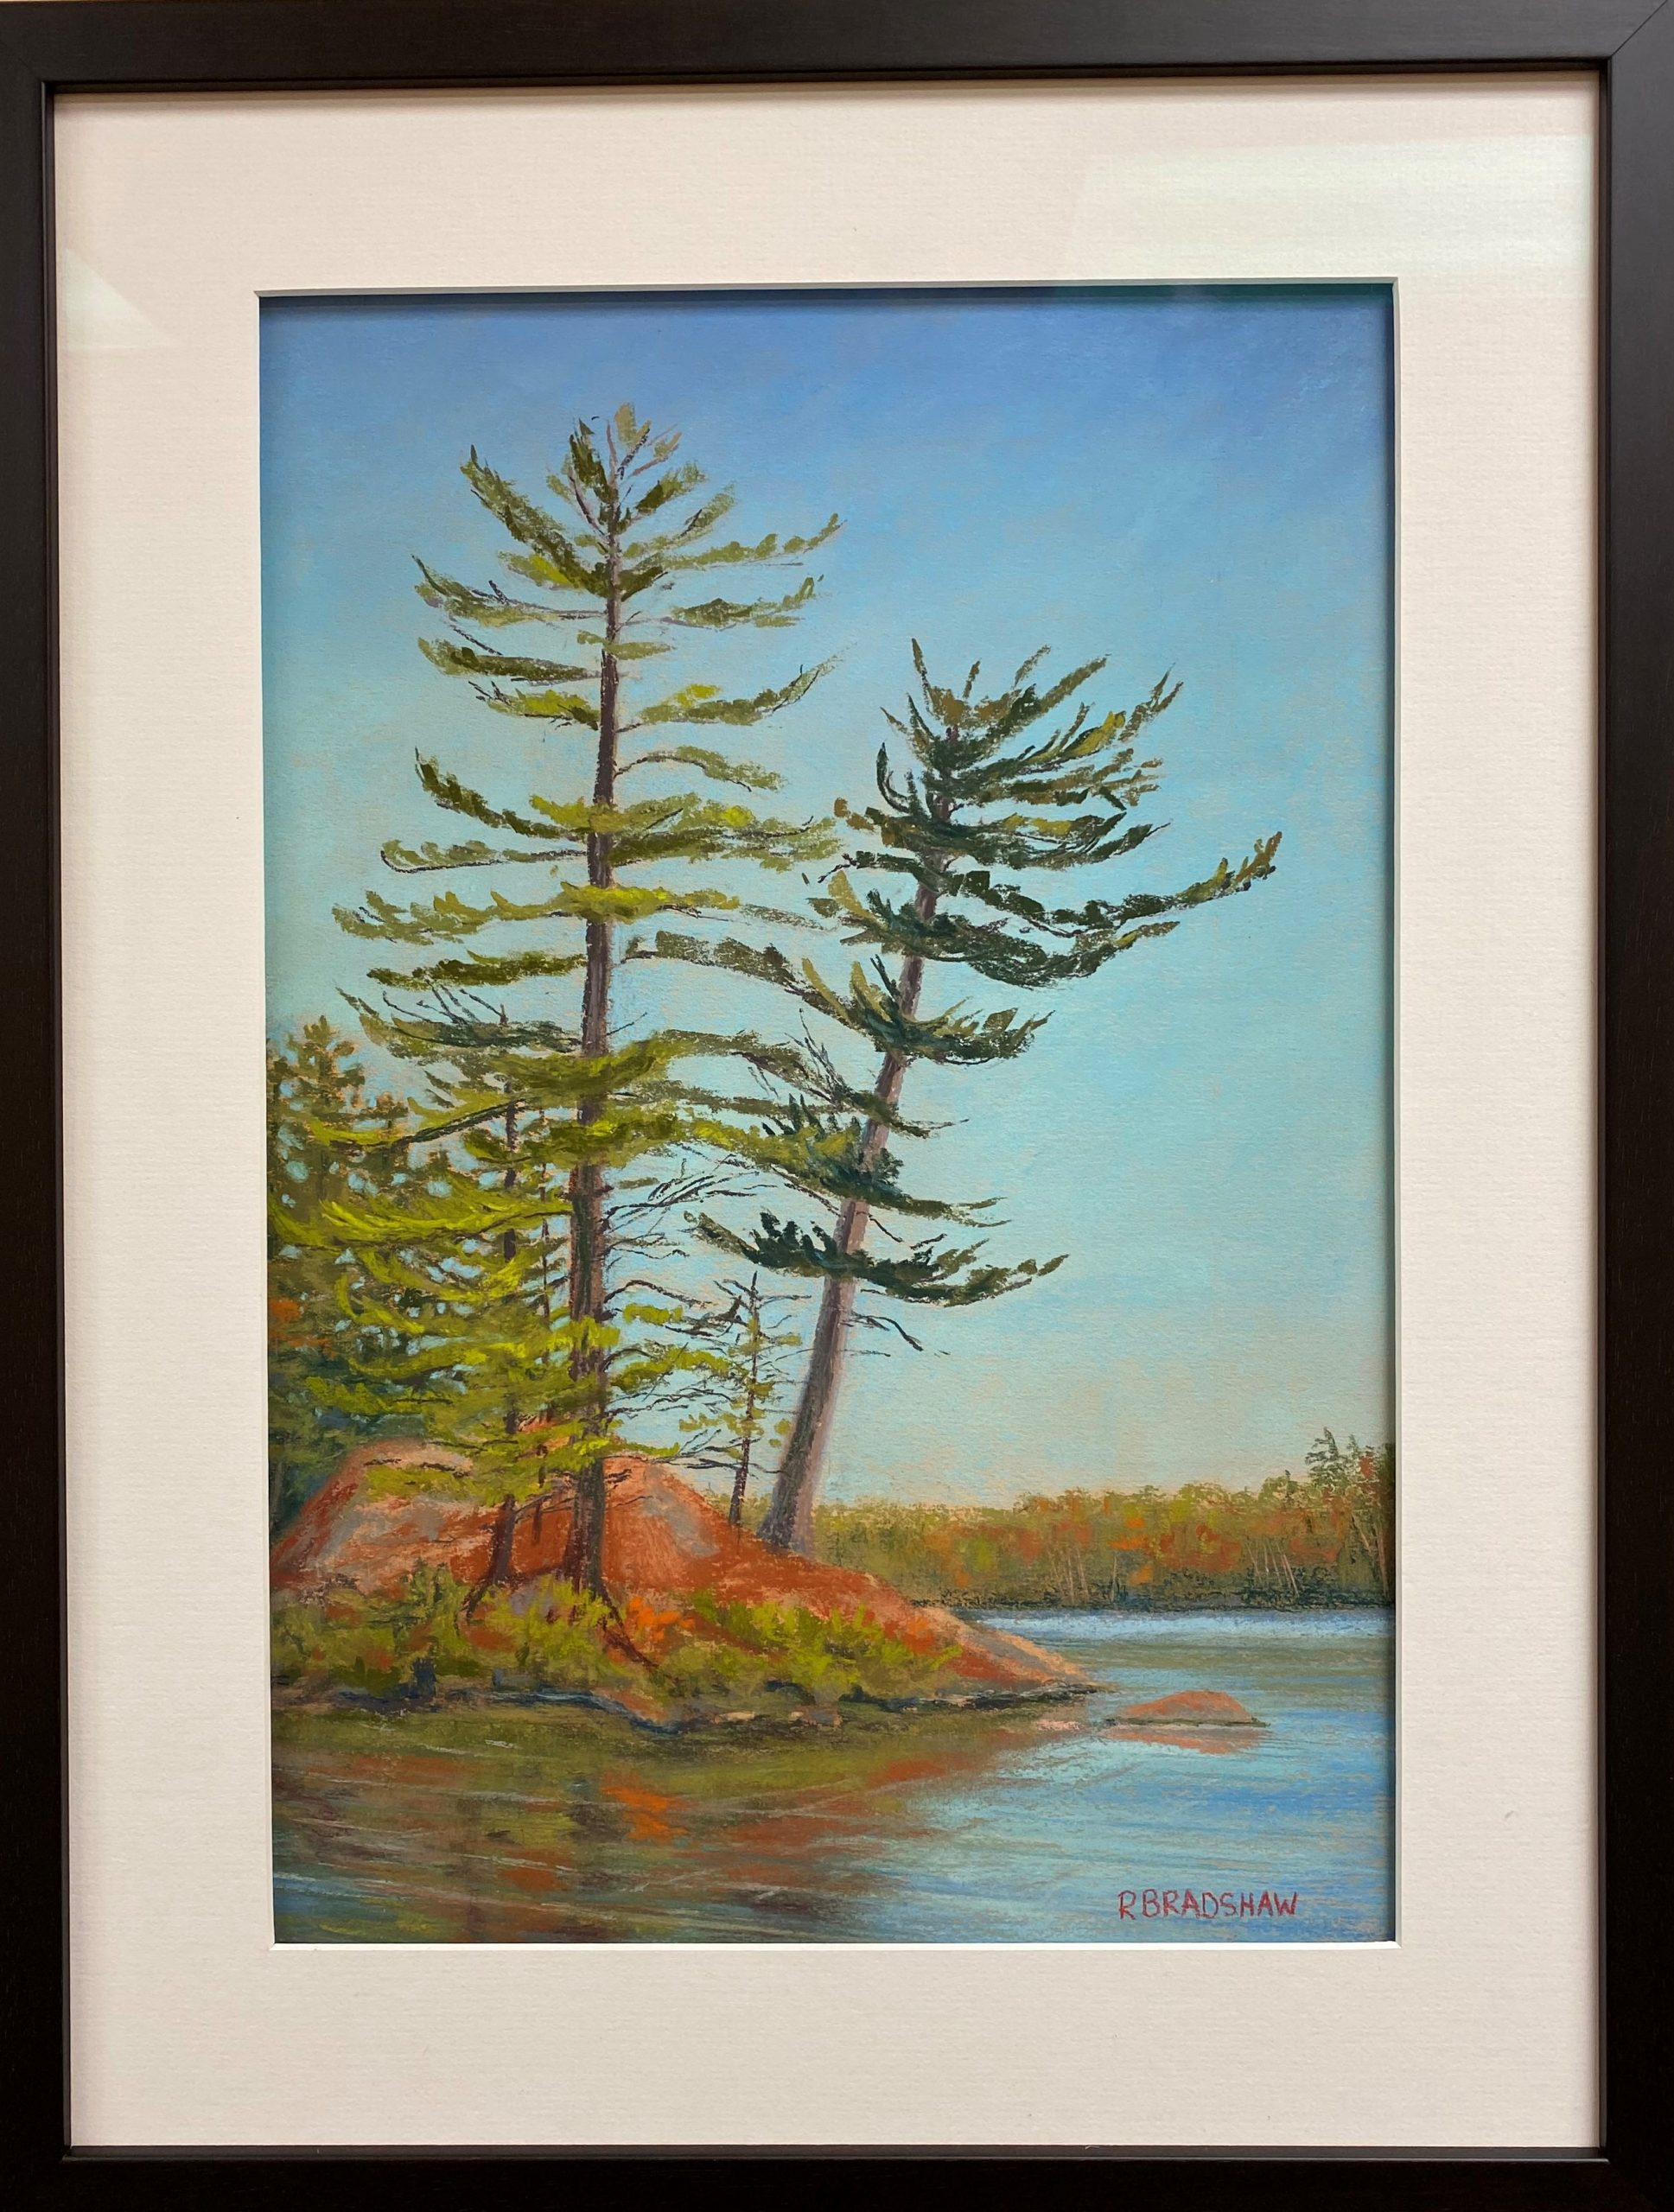 An image of Renata Bradshaw's pastel on paper painting Fall in Killarney